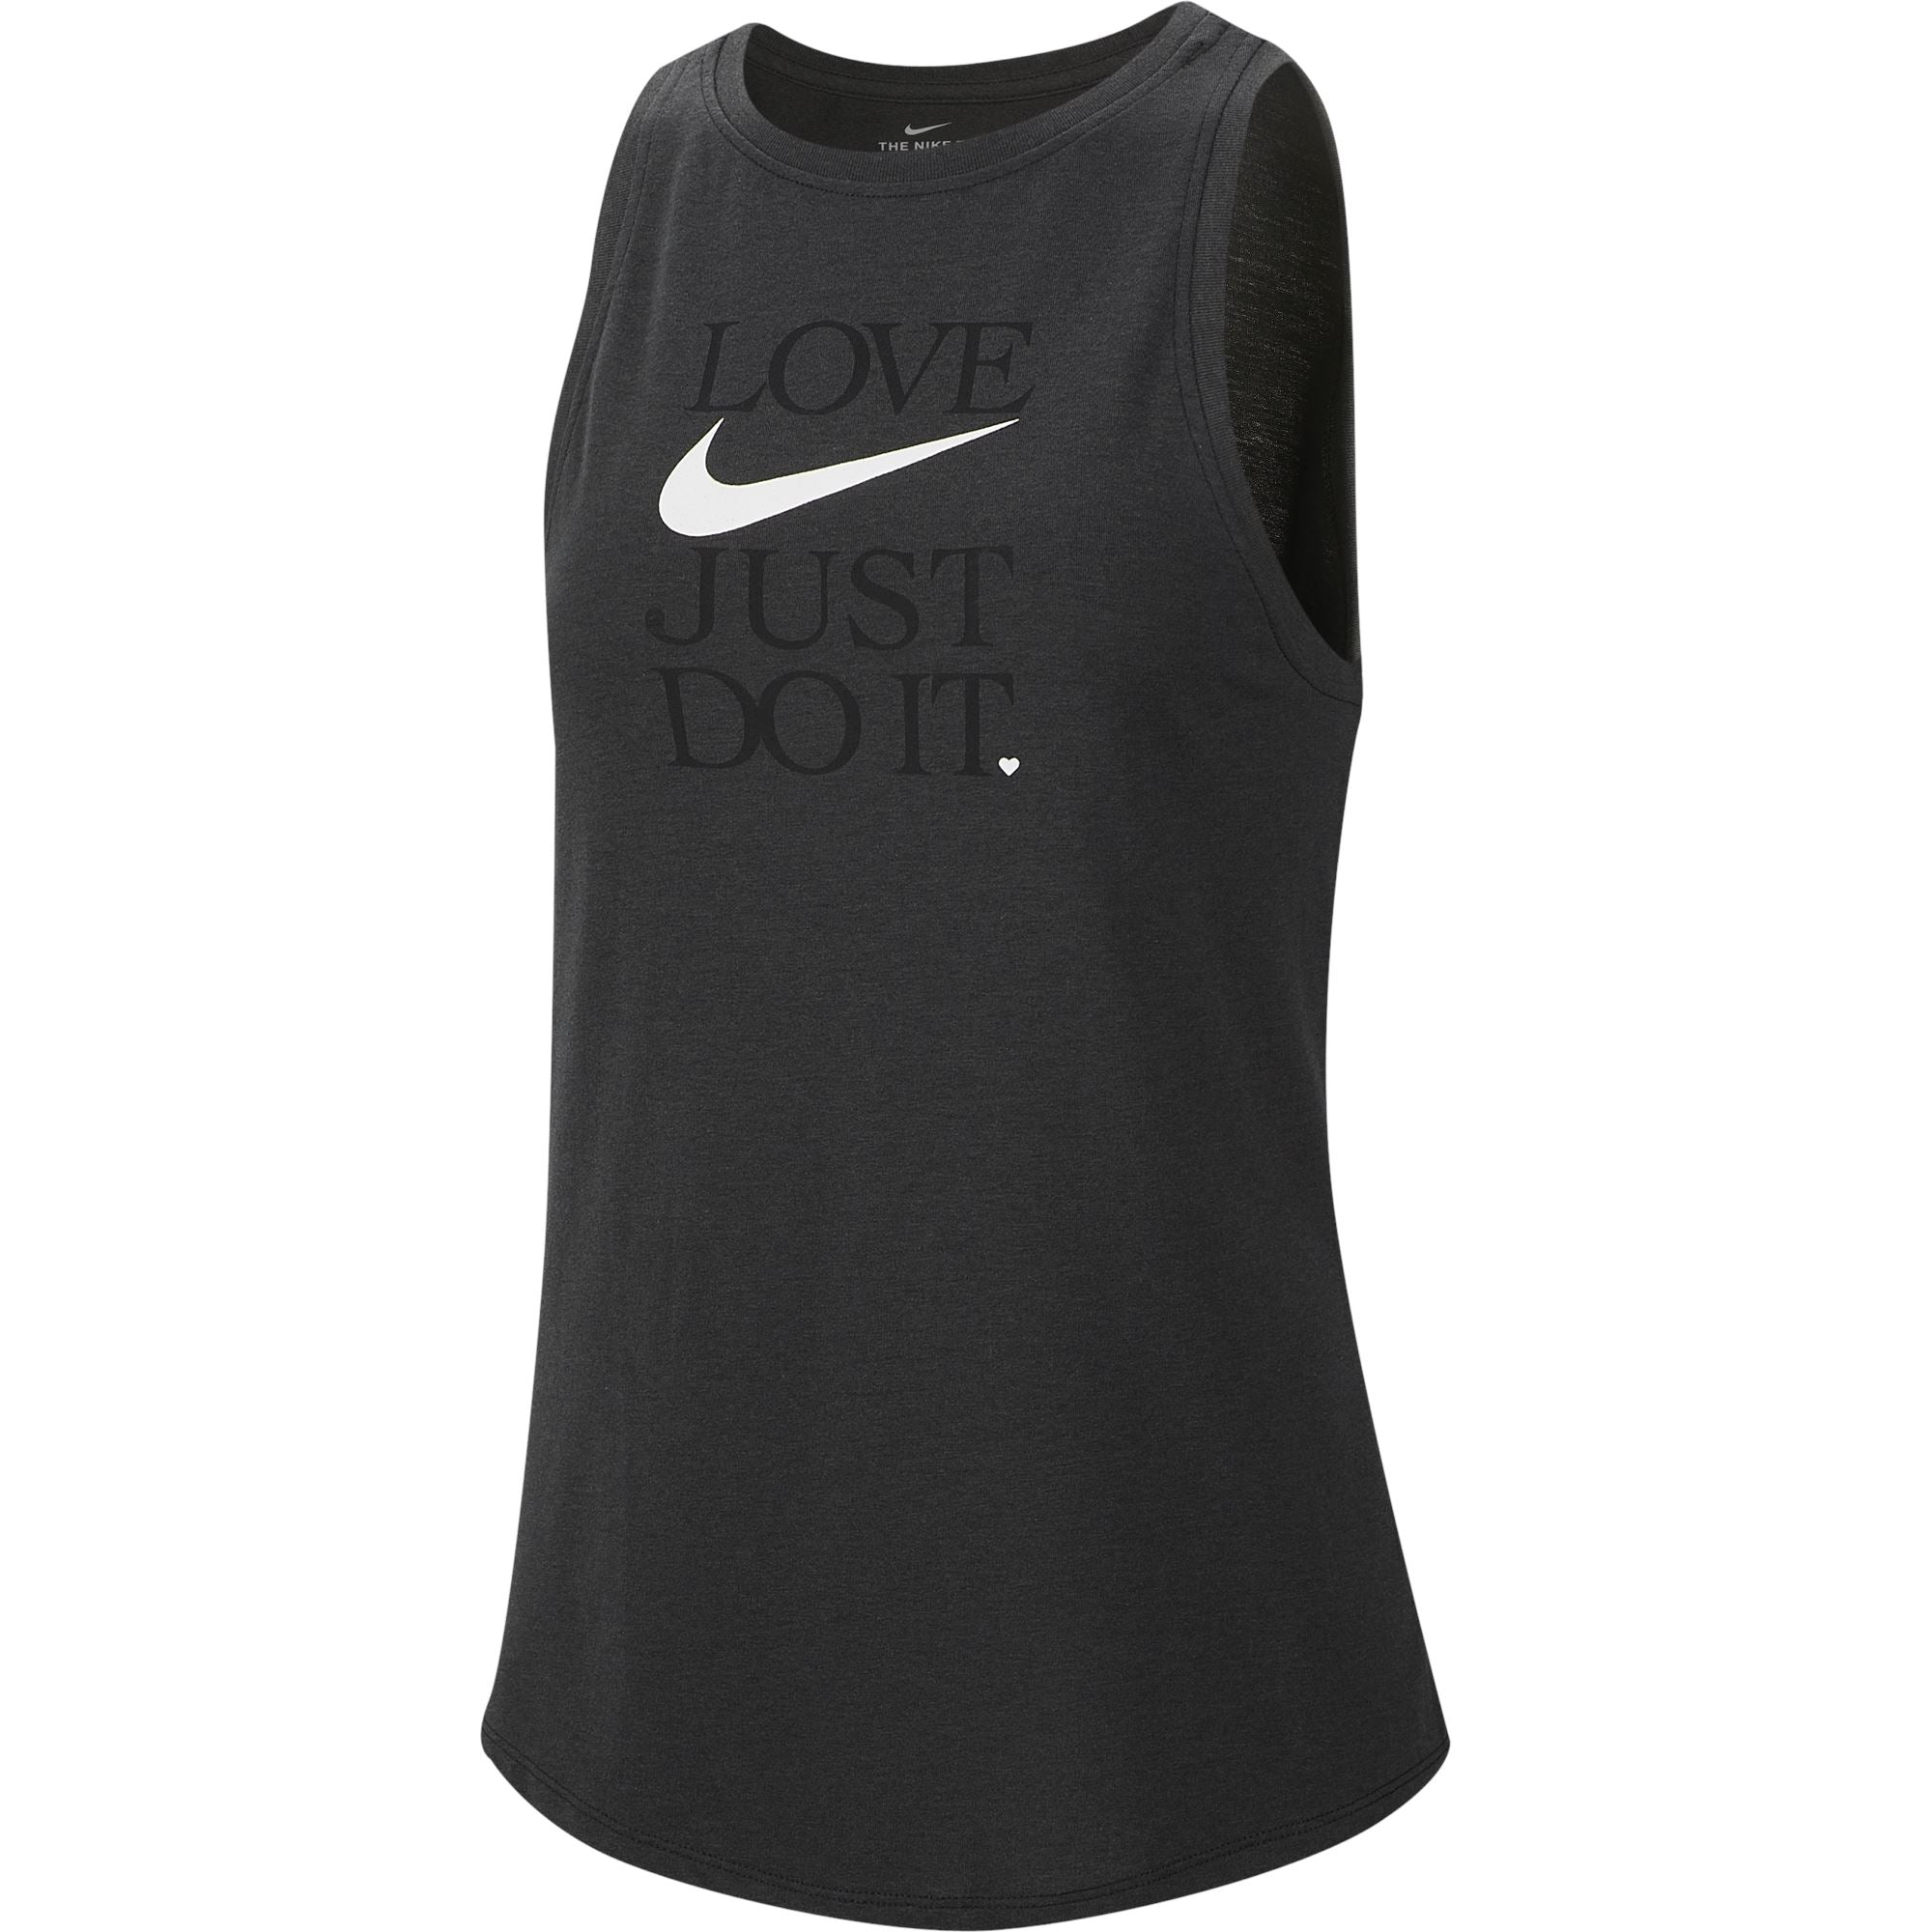 Nike Womens Yoga Dri-Fit Tank - Black/Anthracite/White SP-ApparelTanks-Womens Nike